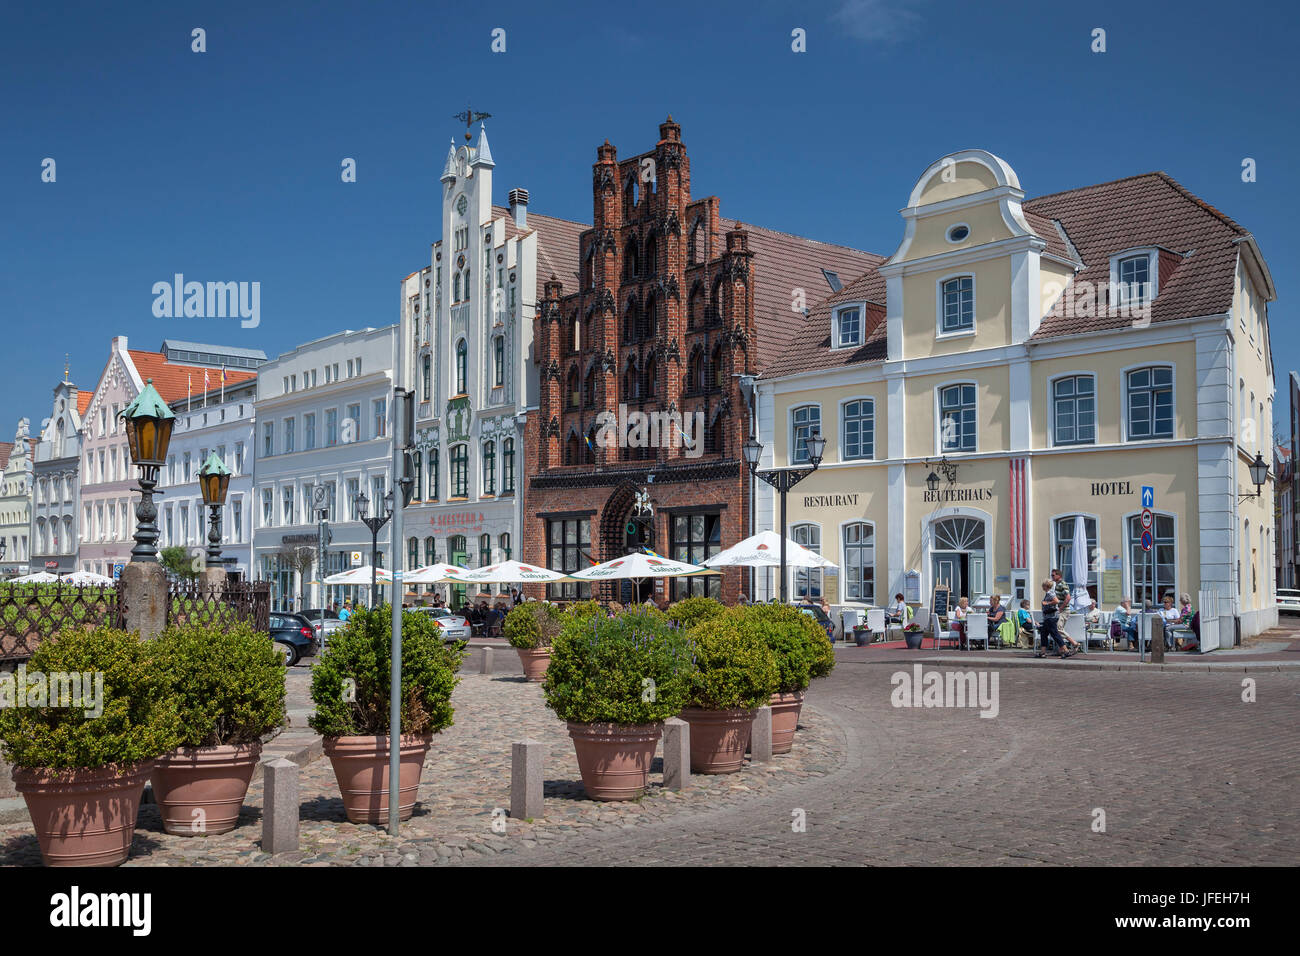 Town houses on the marketplace, Hanseatic town Wismar, Mecklenburg, Mecklenburg-West Pomerania, Germany - Stock Image